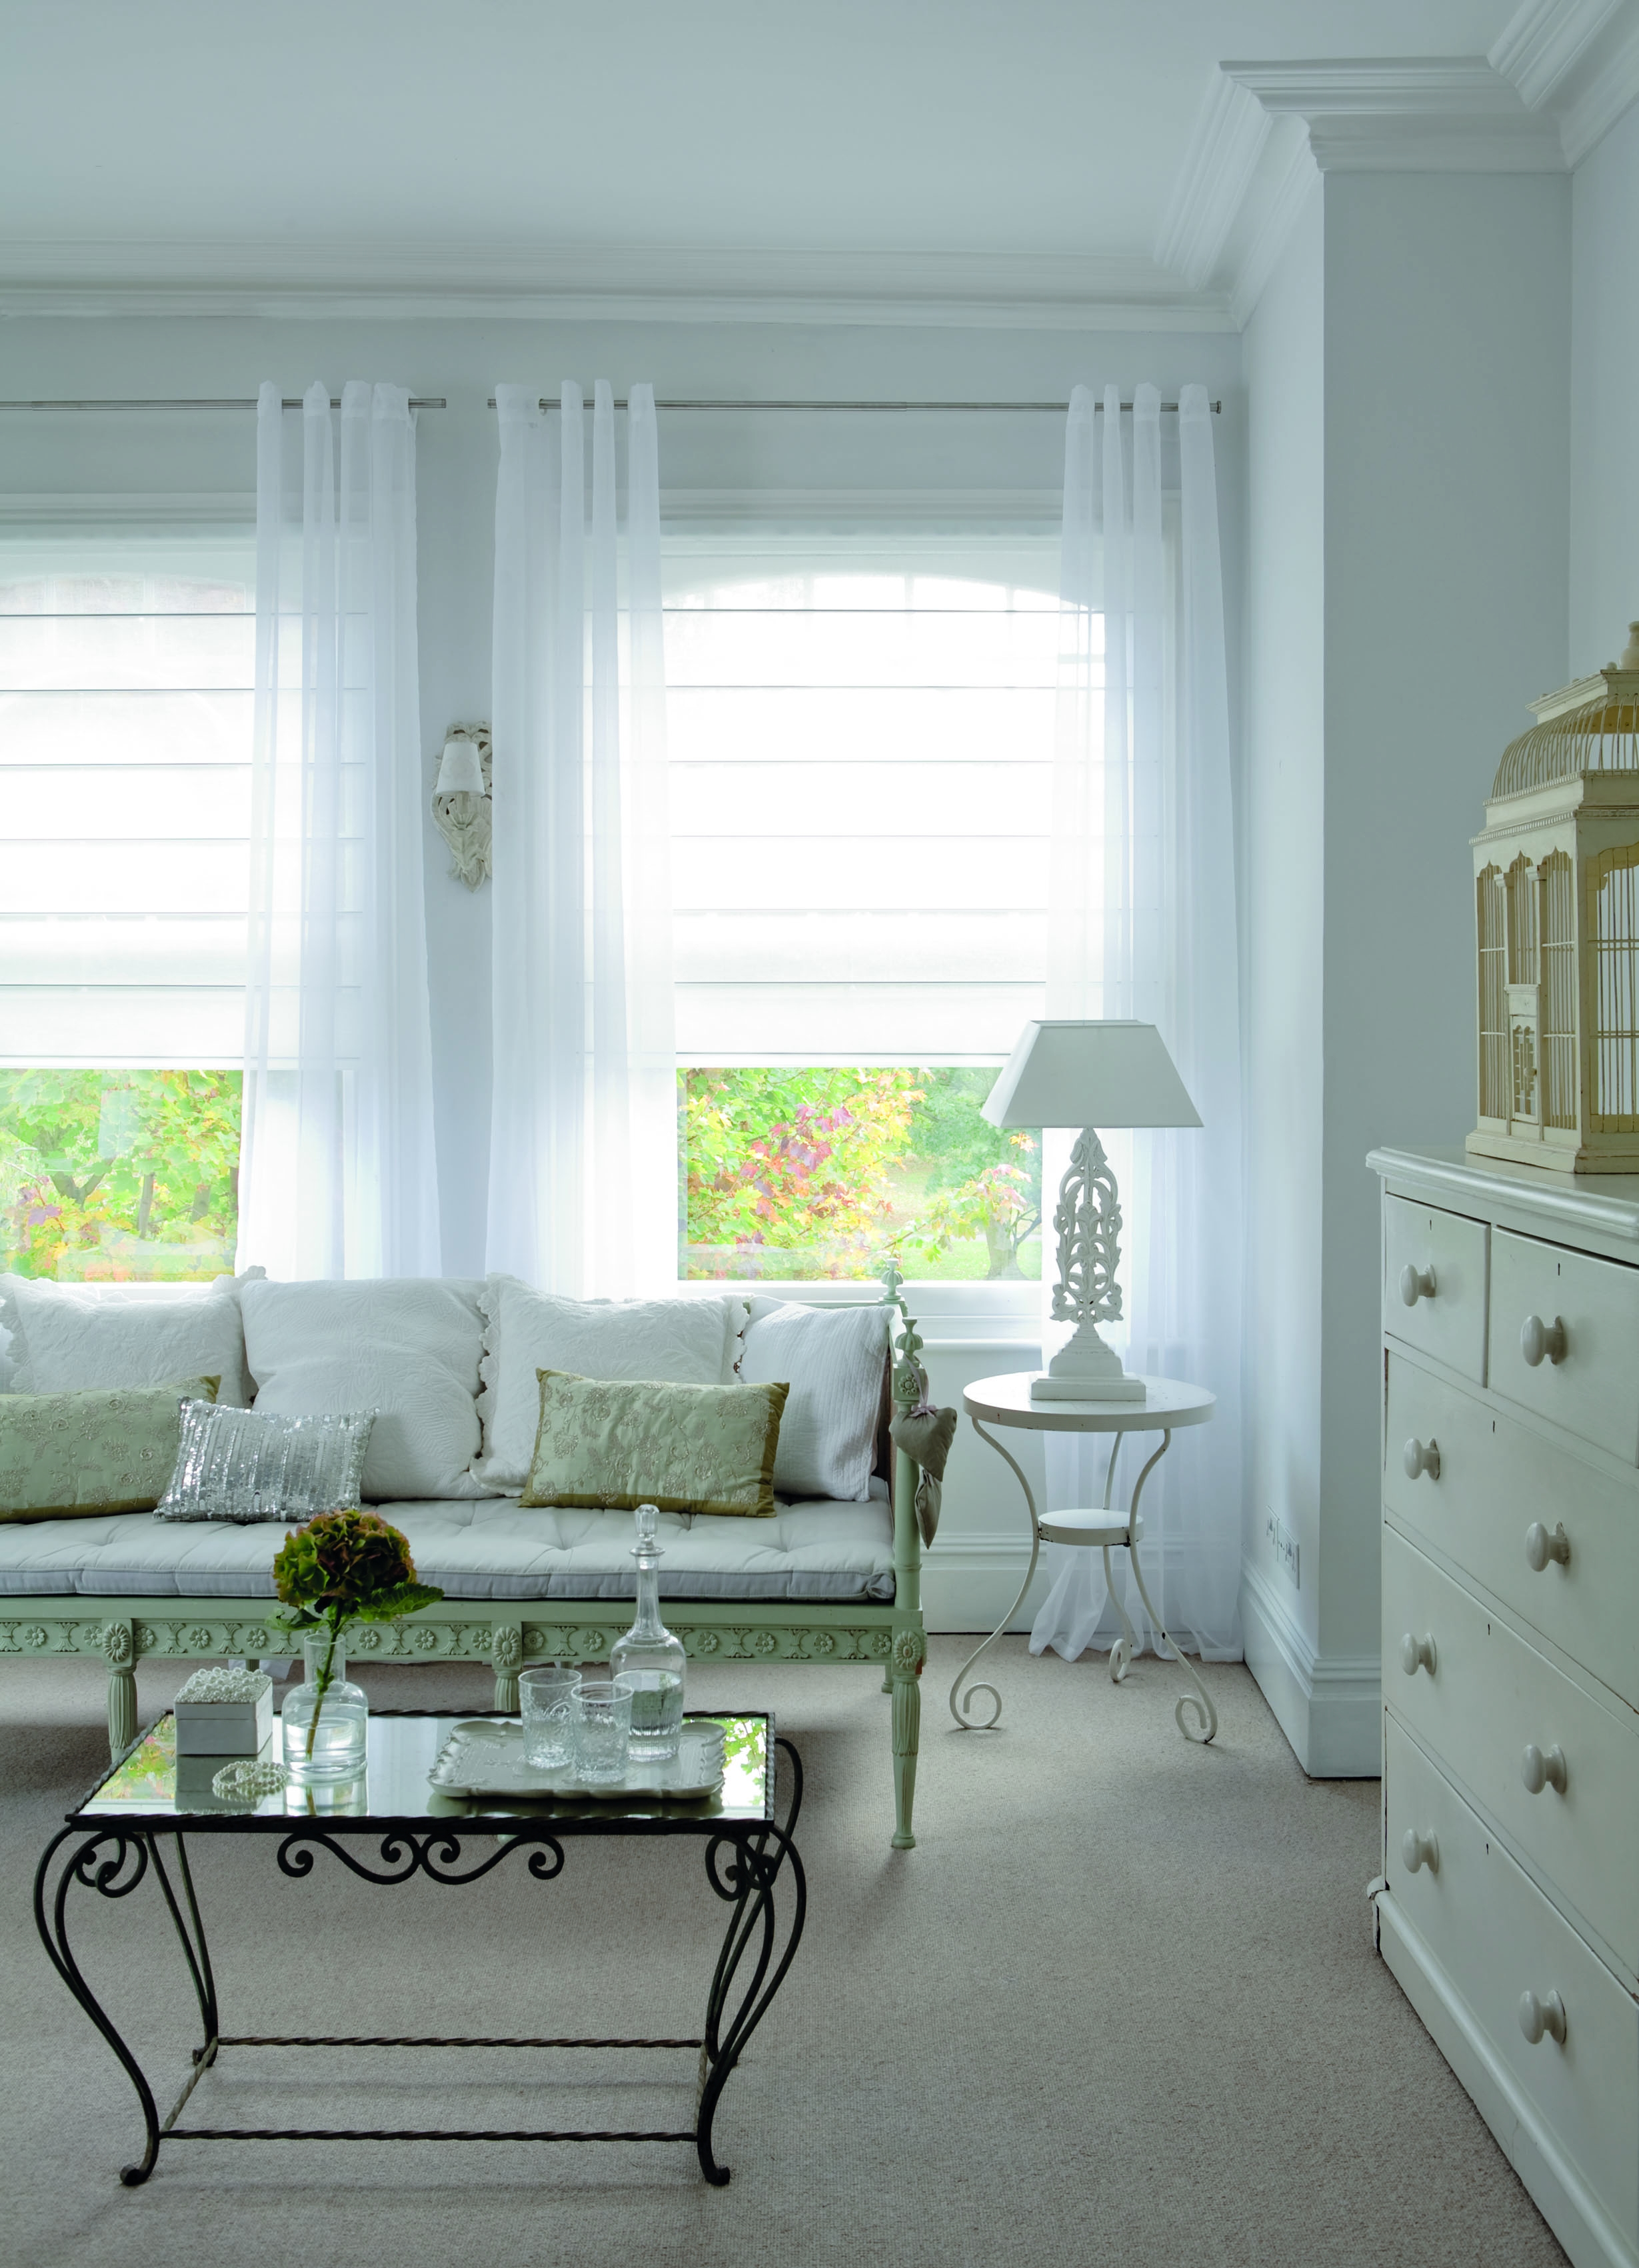 Cheapest Blinds Uk Ltd Cream Stripe Roman Blinds With Regard To Striped Roman Blinds (Image 5 of 15)